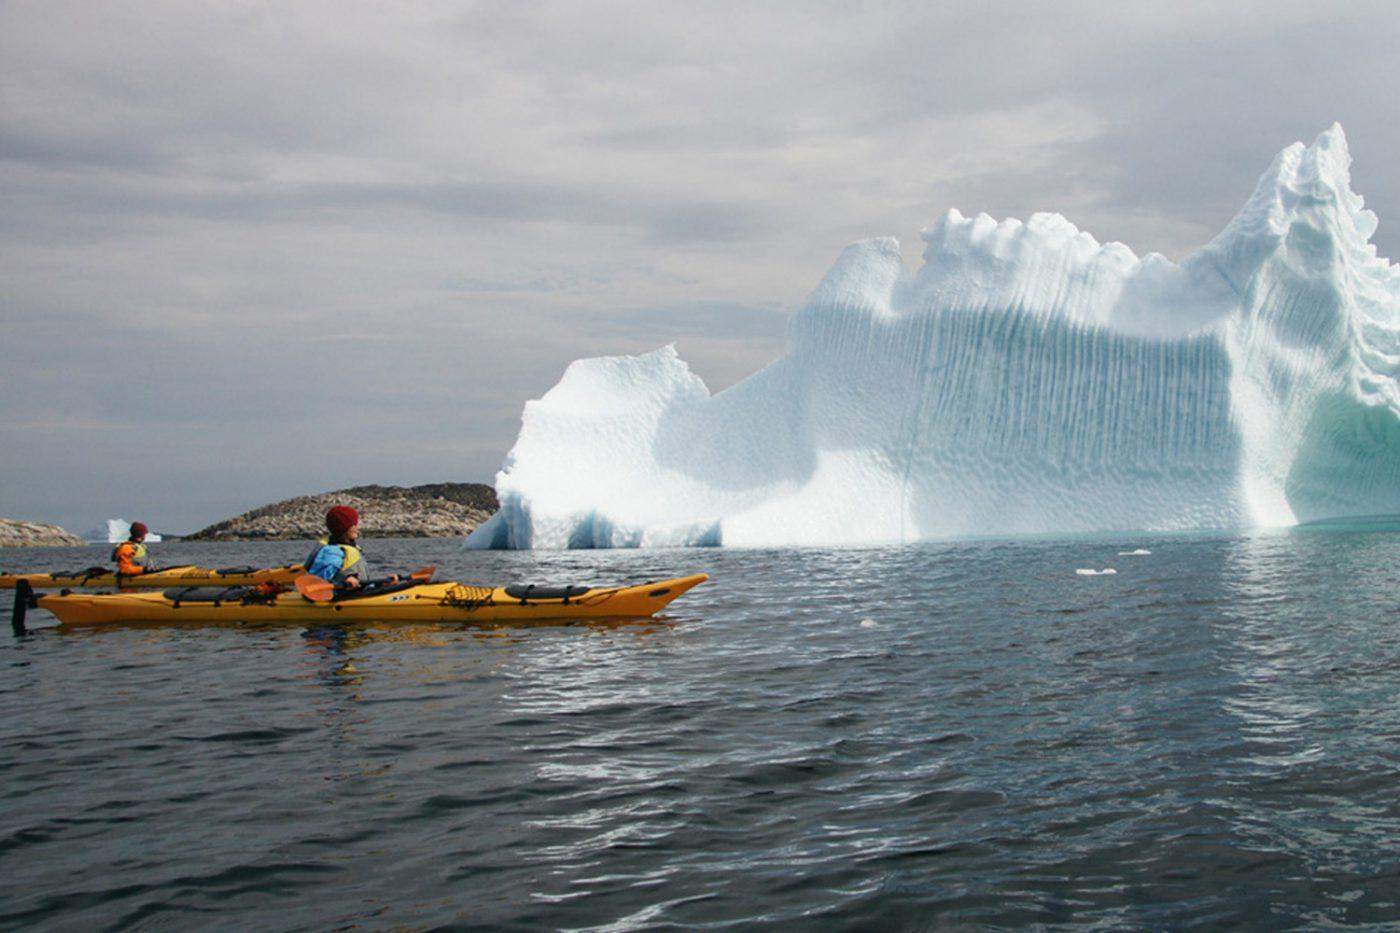 Grönlandresor: Kayaking among whales and icebergs, 8 days